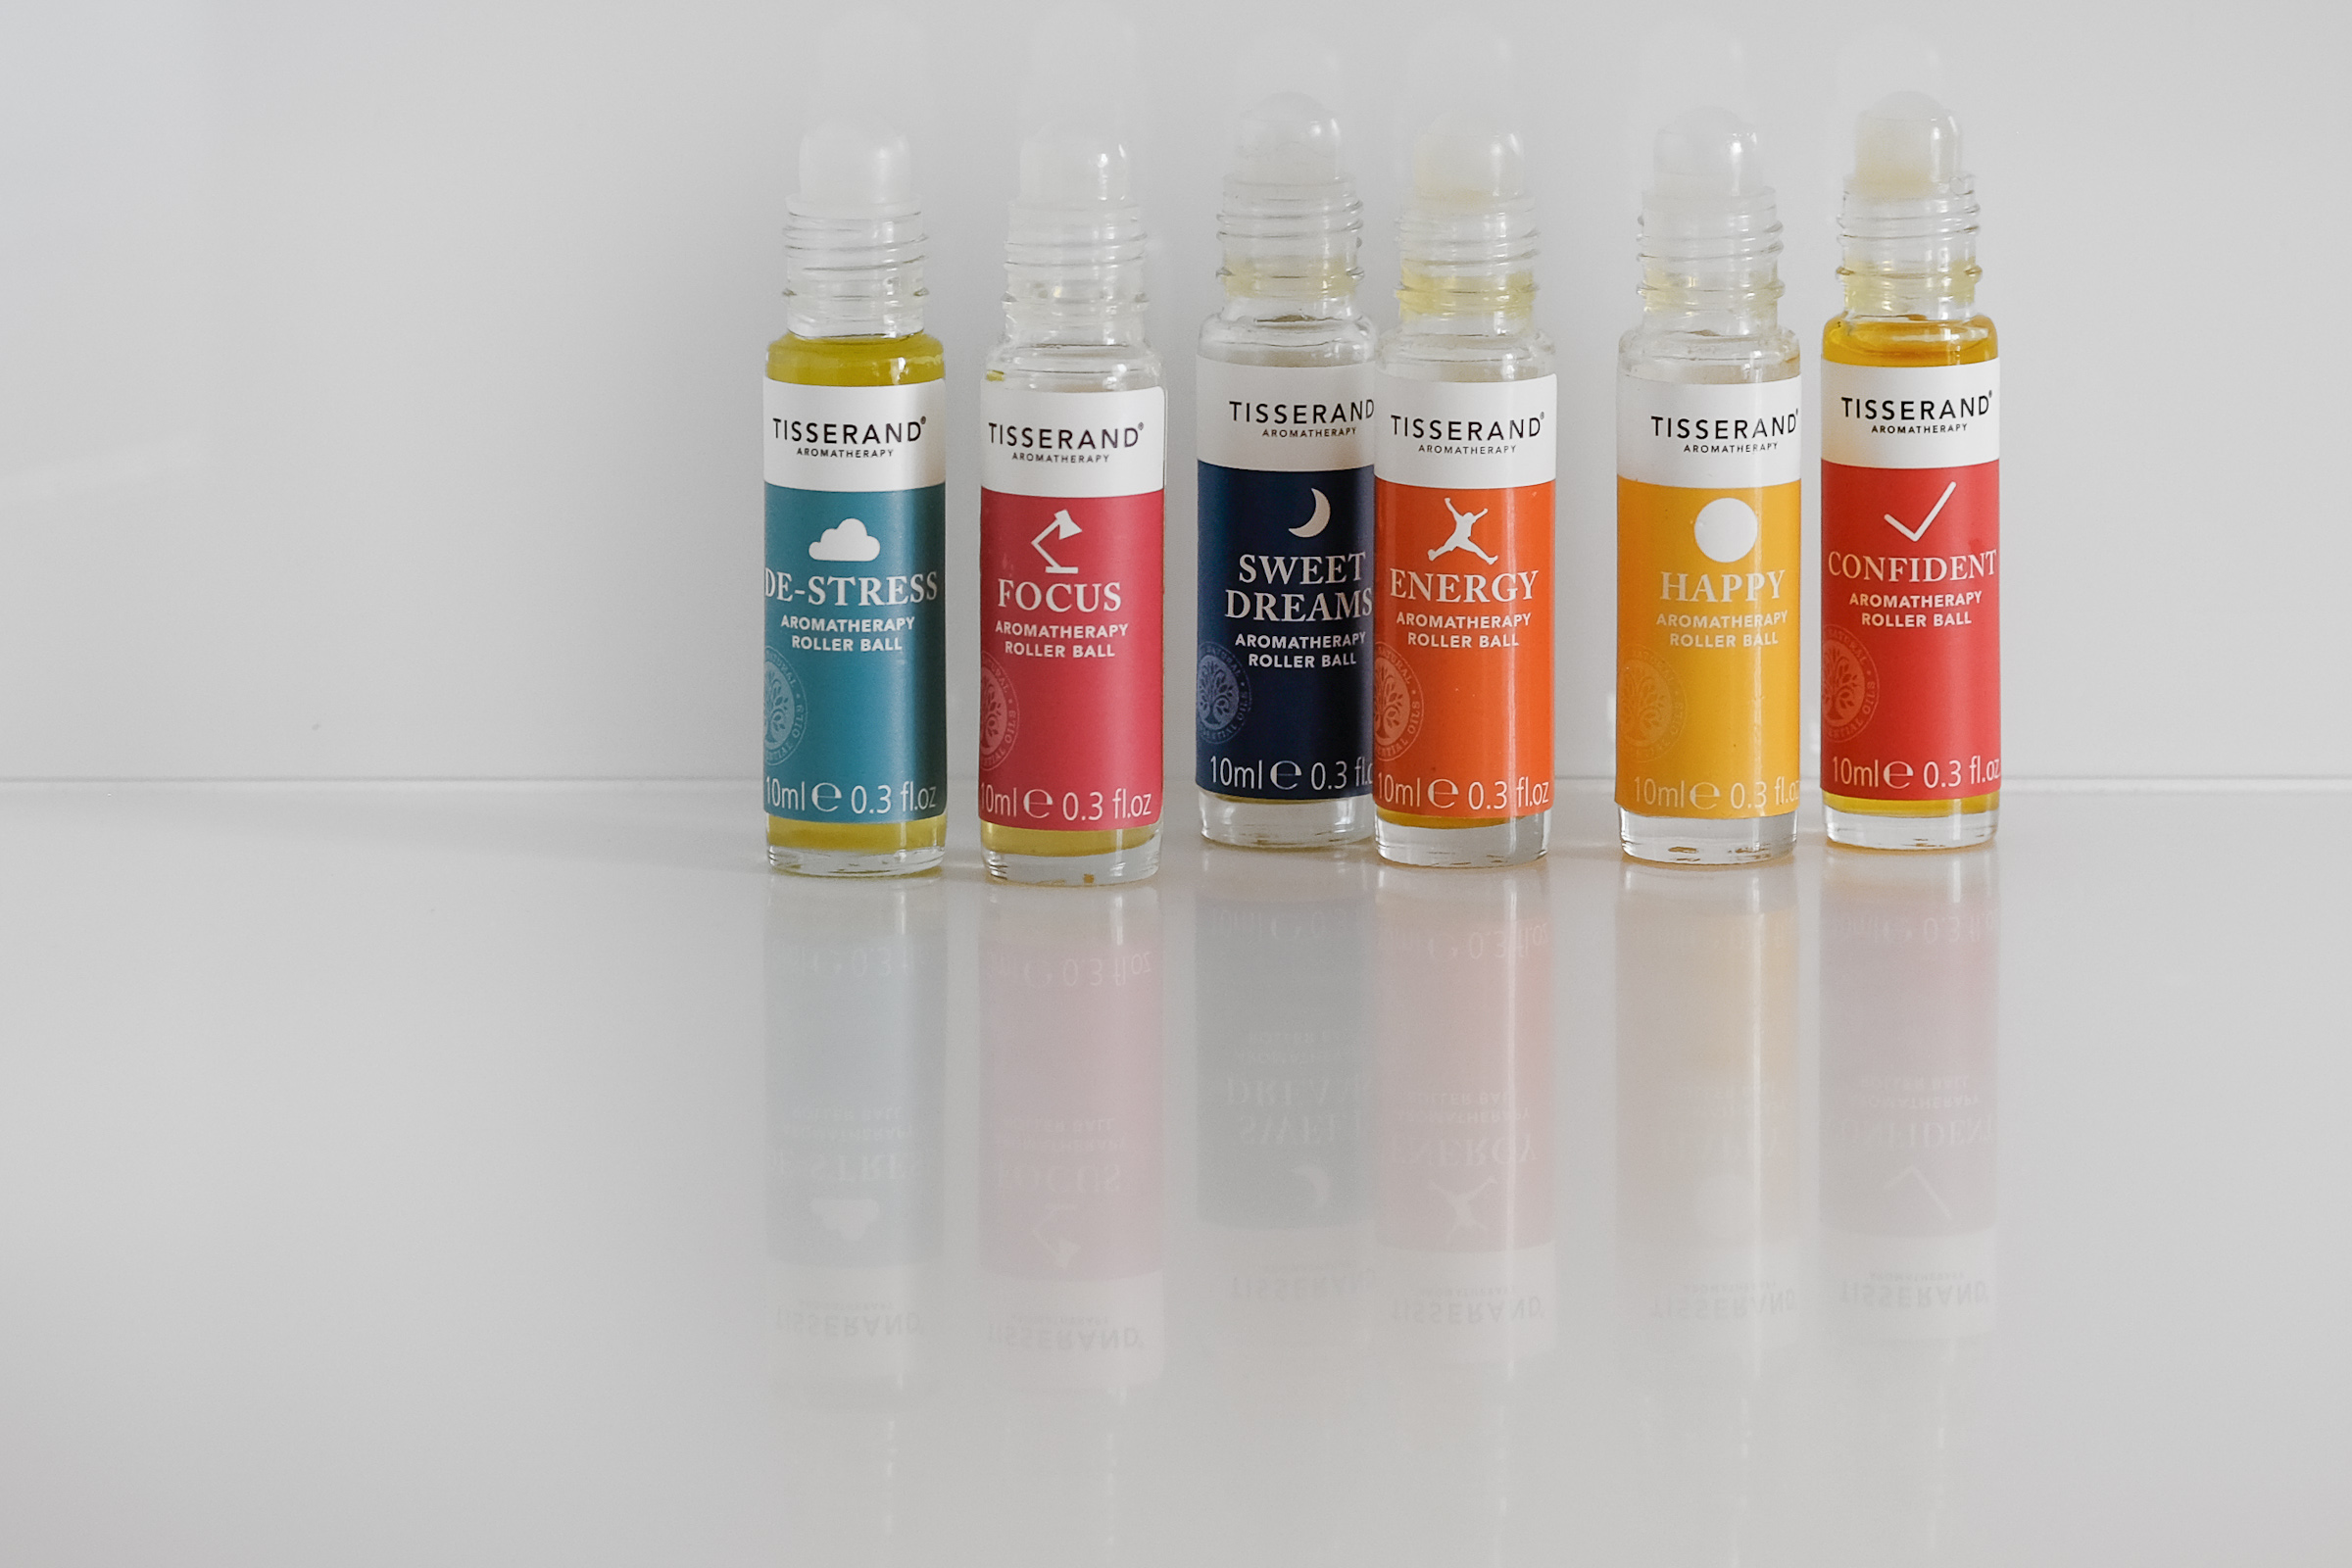 A selection of aromatherapy blends by London-based company Tisserand.